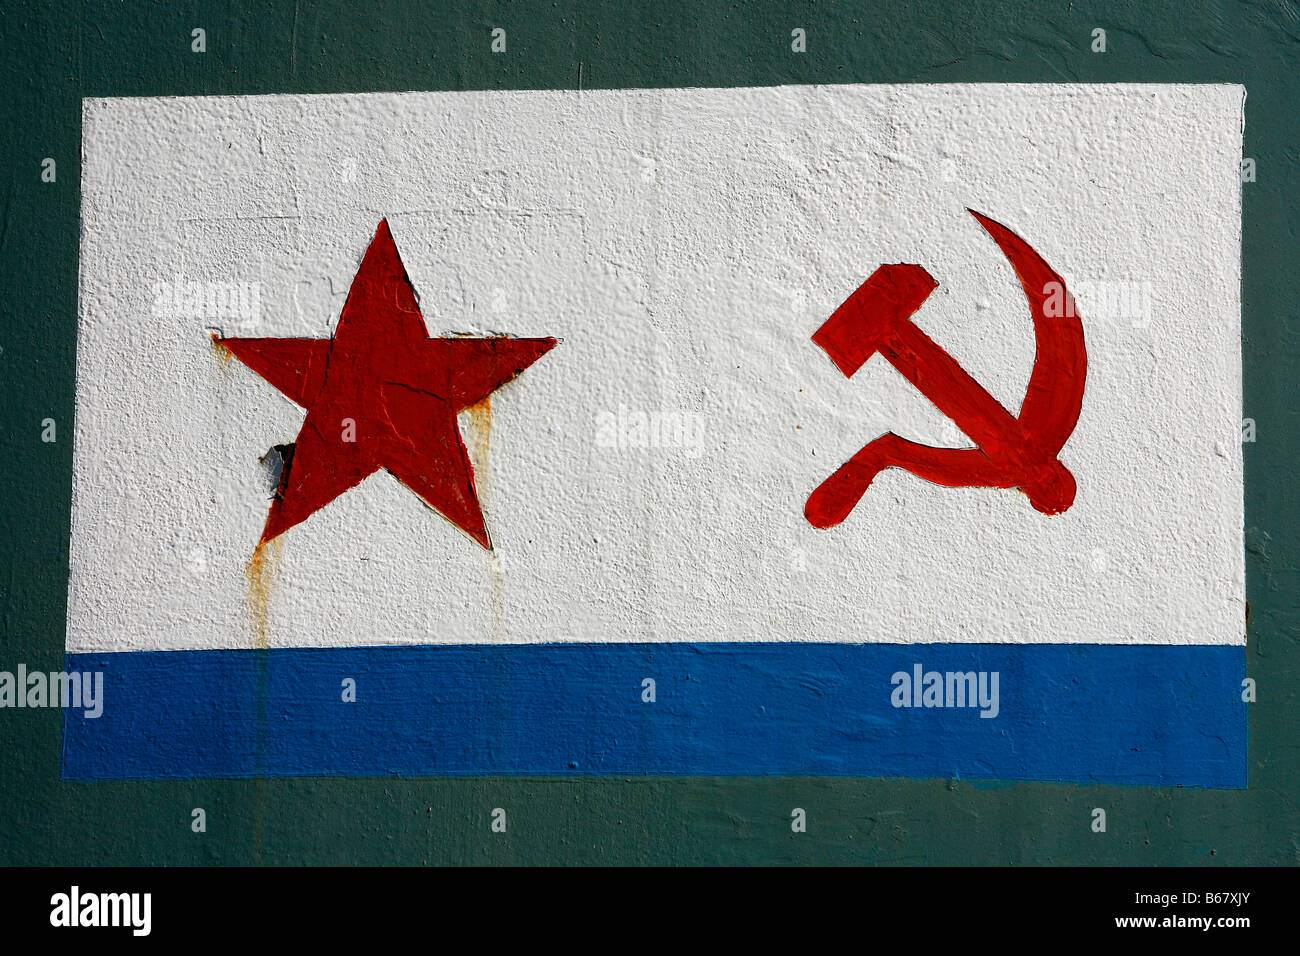 Soviet symbols on the conning tower of a world war ii submarine at soviet symbols on the conning tower of a world war ii submarine at victory park in moscow russia buycottarizona Gallery